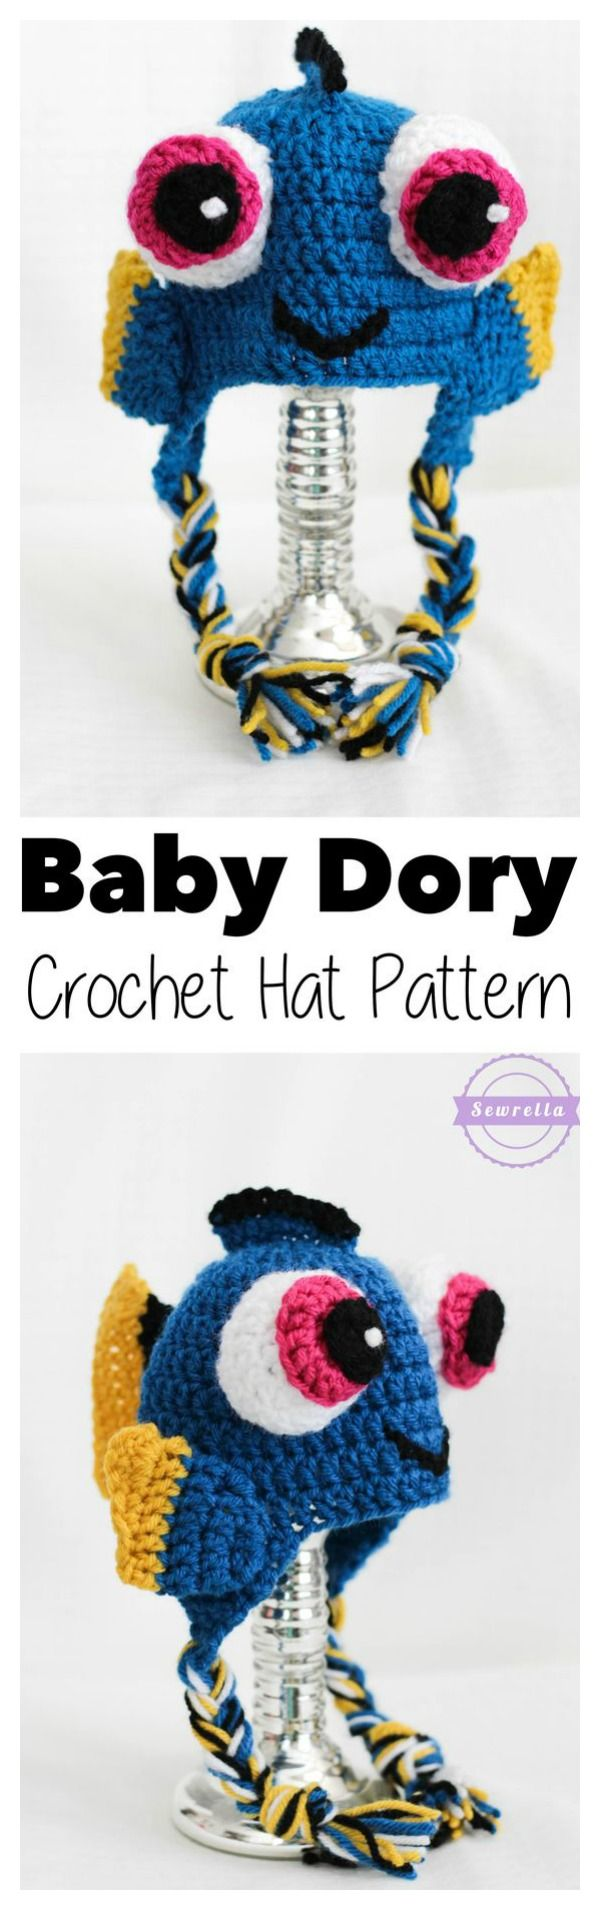 Finding Dory Crochet / Knitting Patterns | Accesorios para bebes, Mi ...